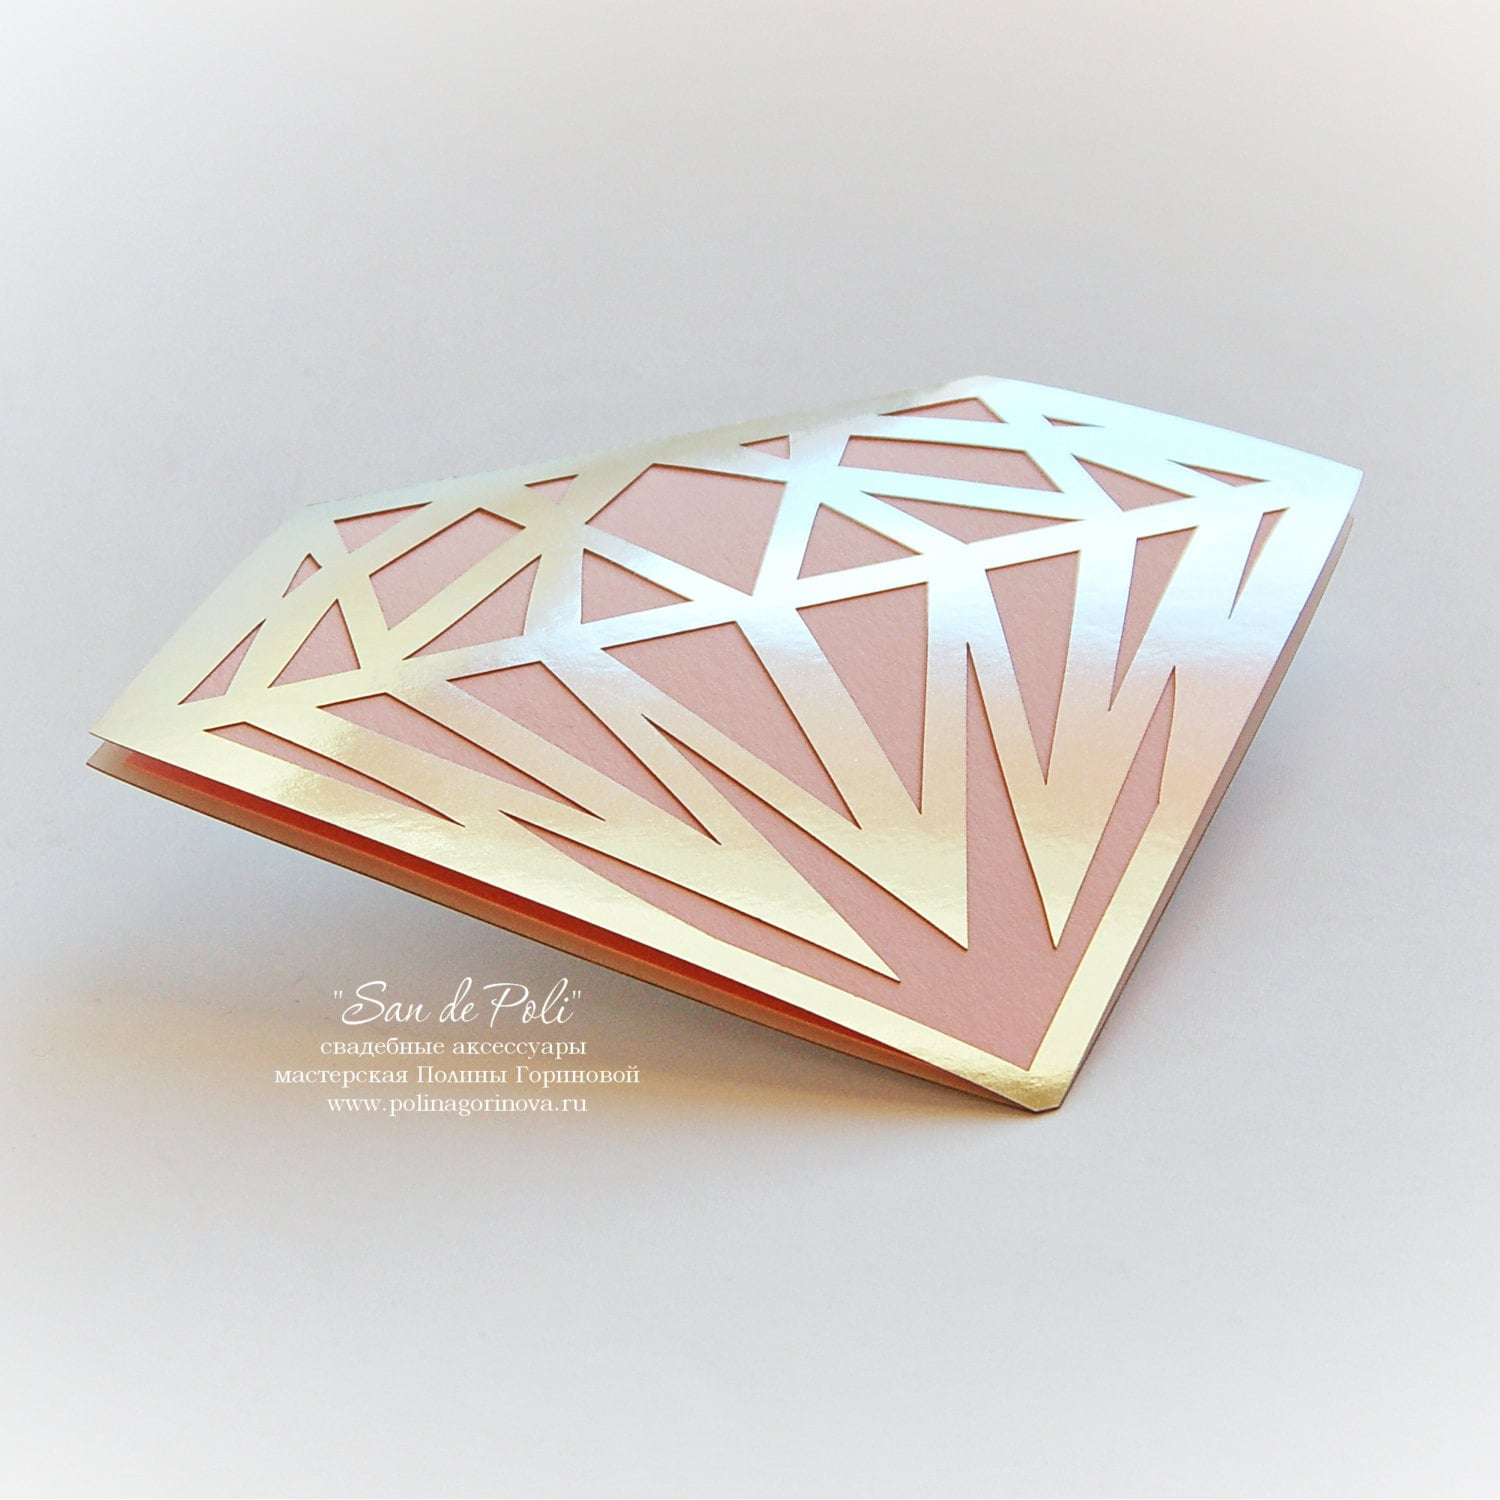 websites card diamond image suit for playing and flat stock apps vector icon